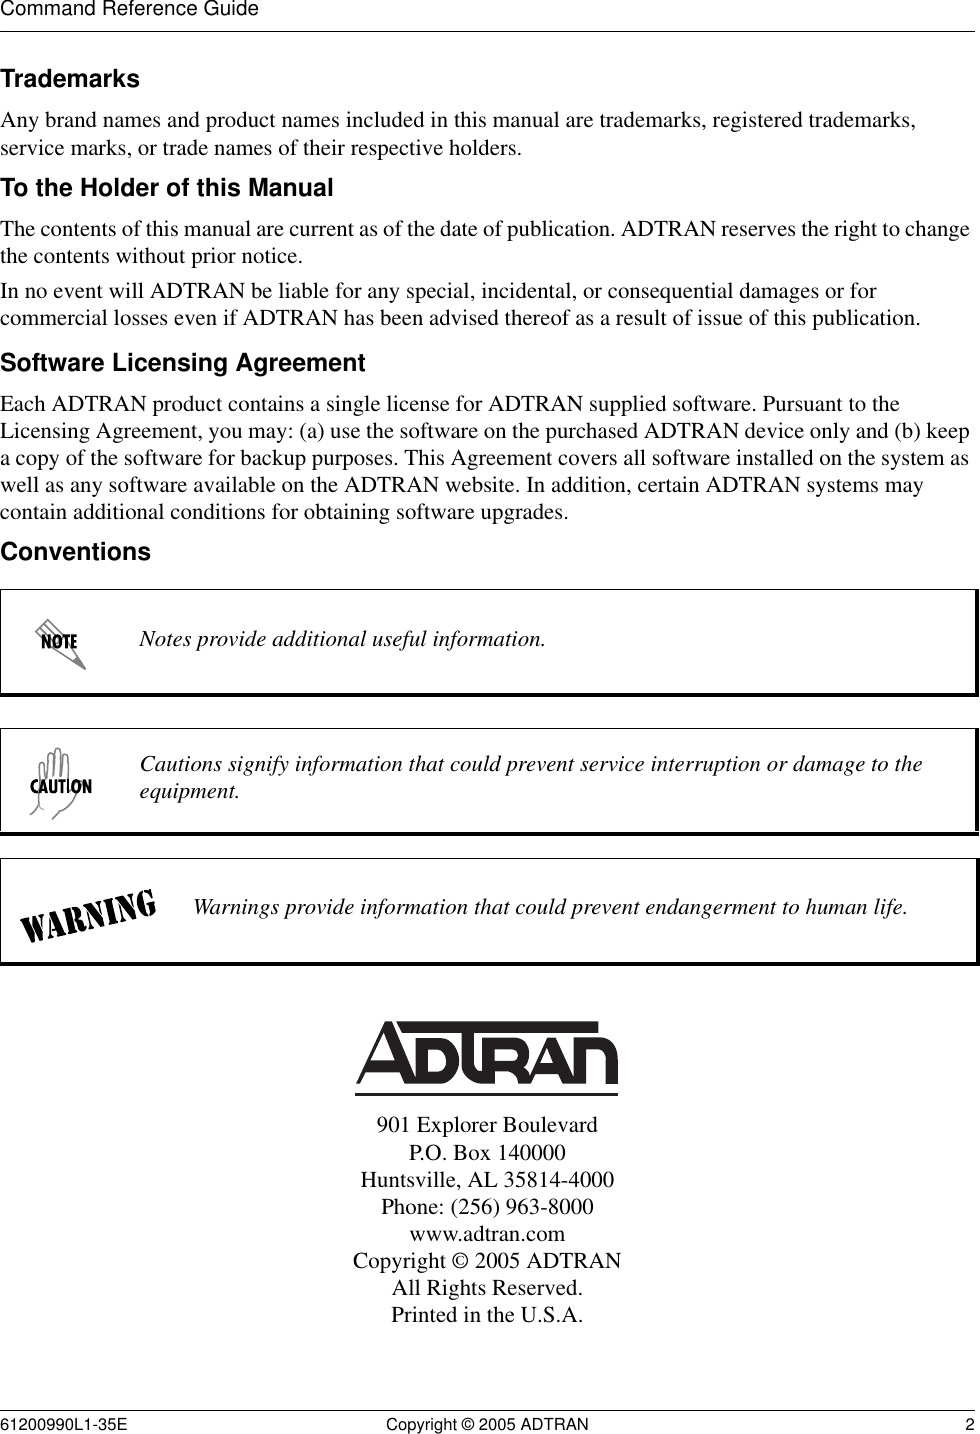 Adtran Total Access 5000 Command Reference Manual